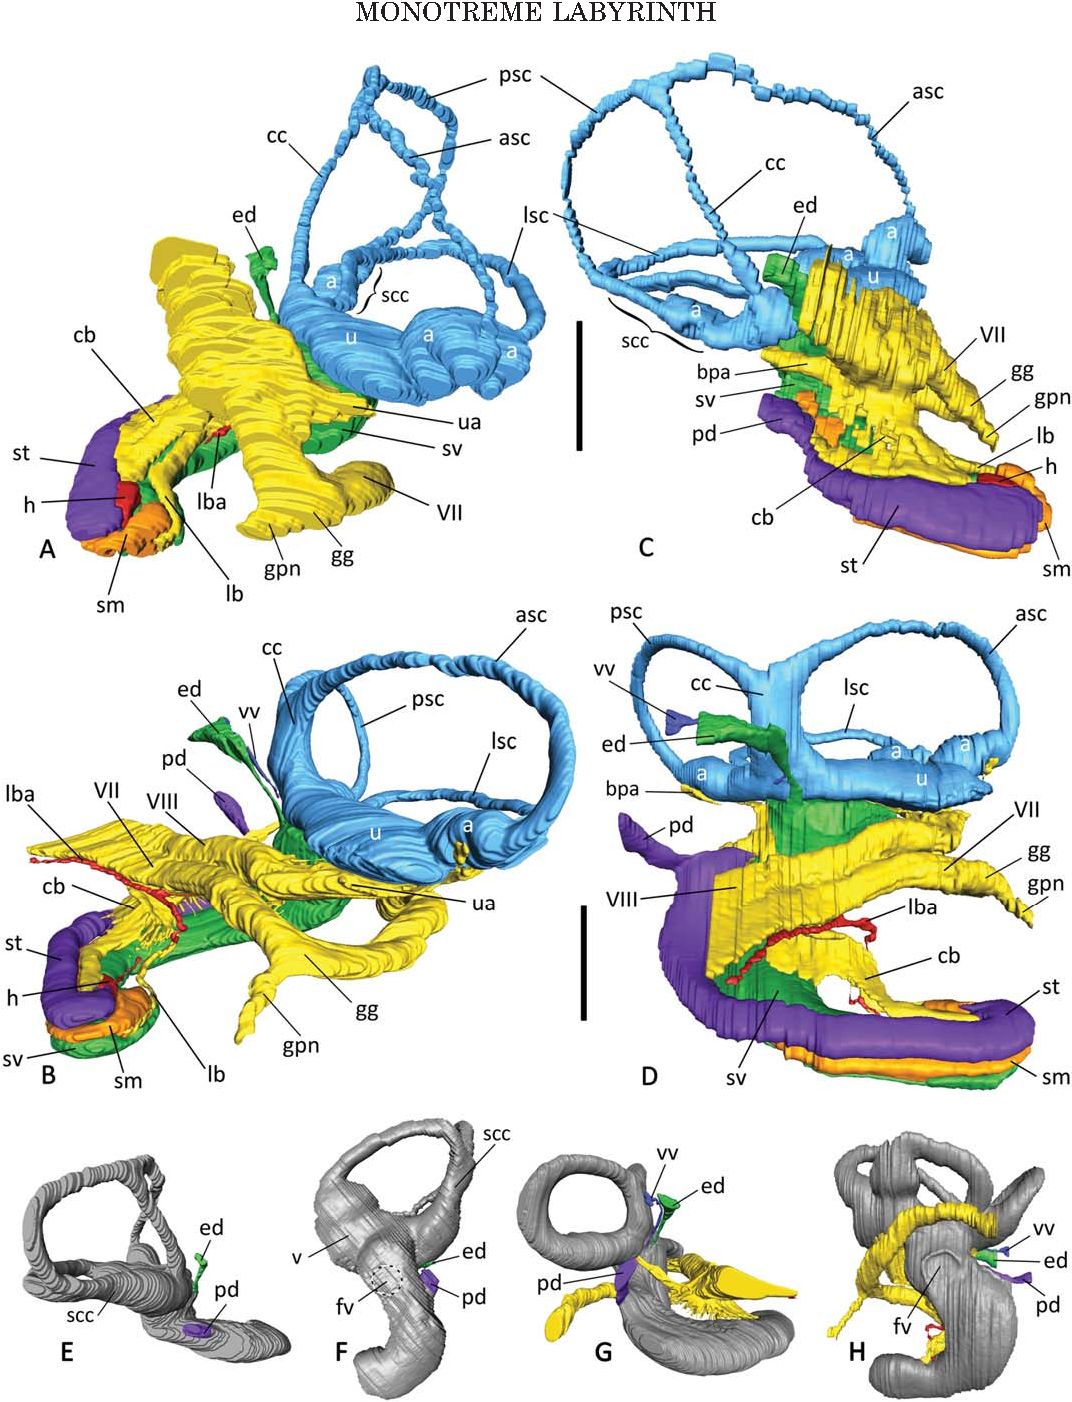 Inner ear labyrinth anatomy of monotremes and implications for ...